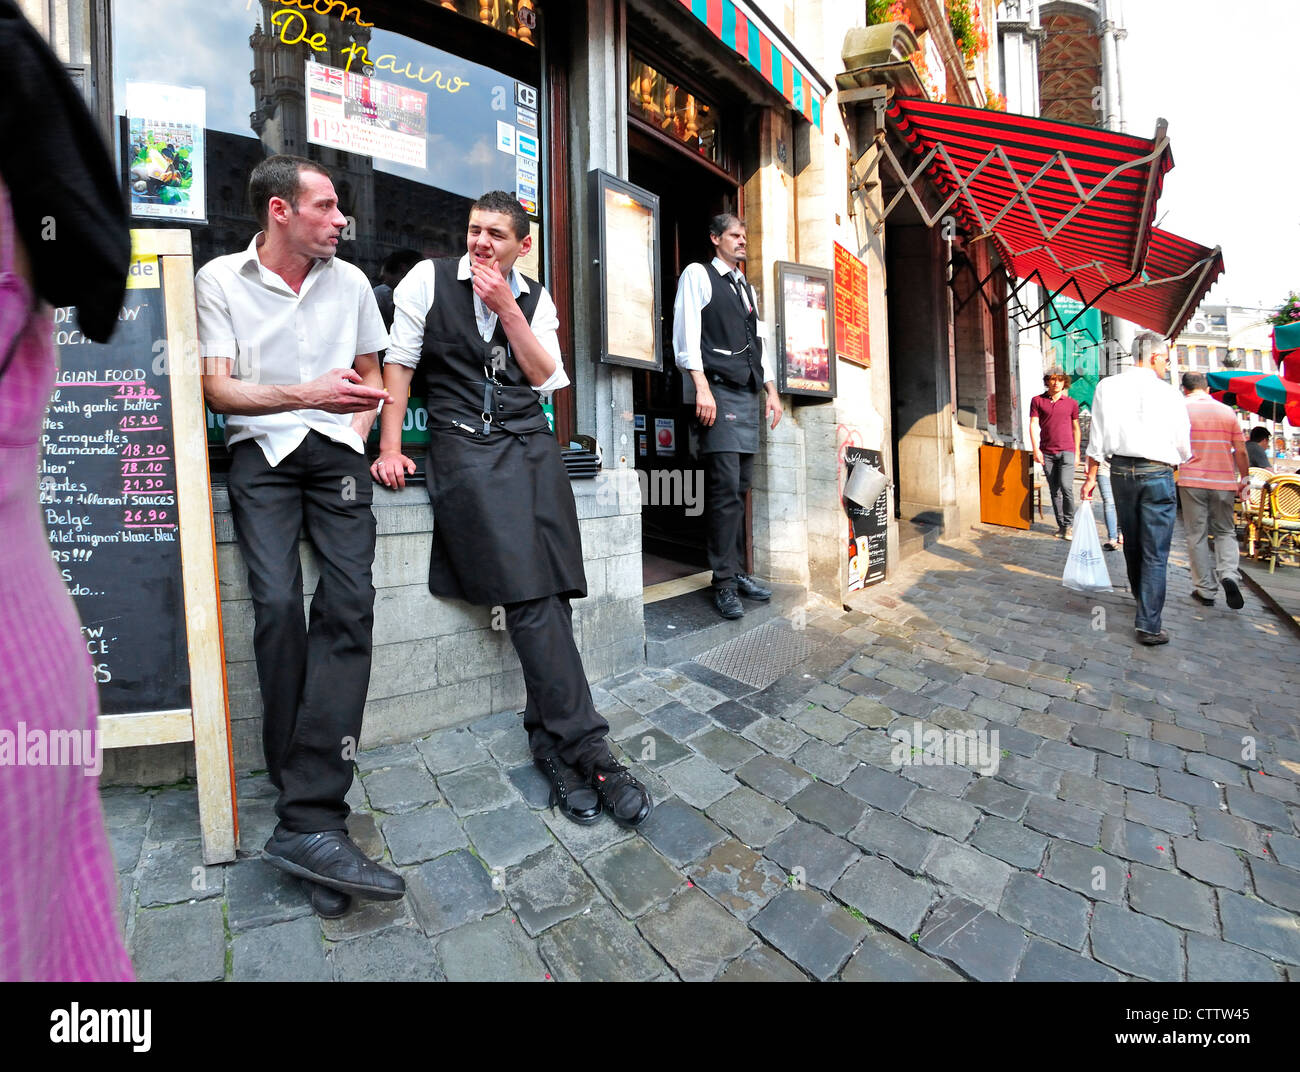 Brussels, Belgium. Waiters relaxing outside restaurant - Stock Image